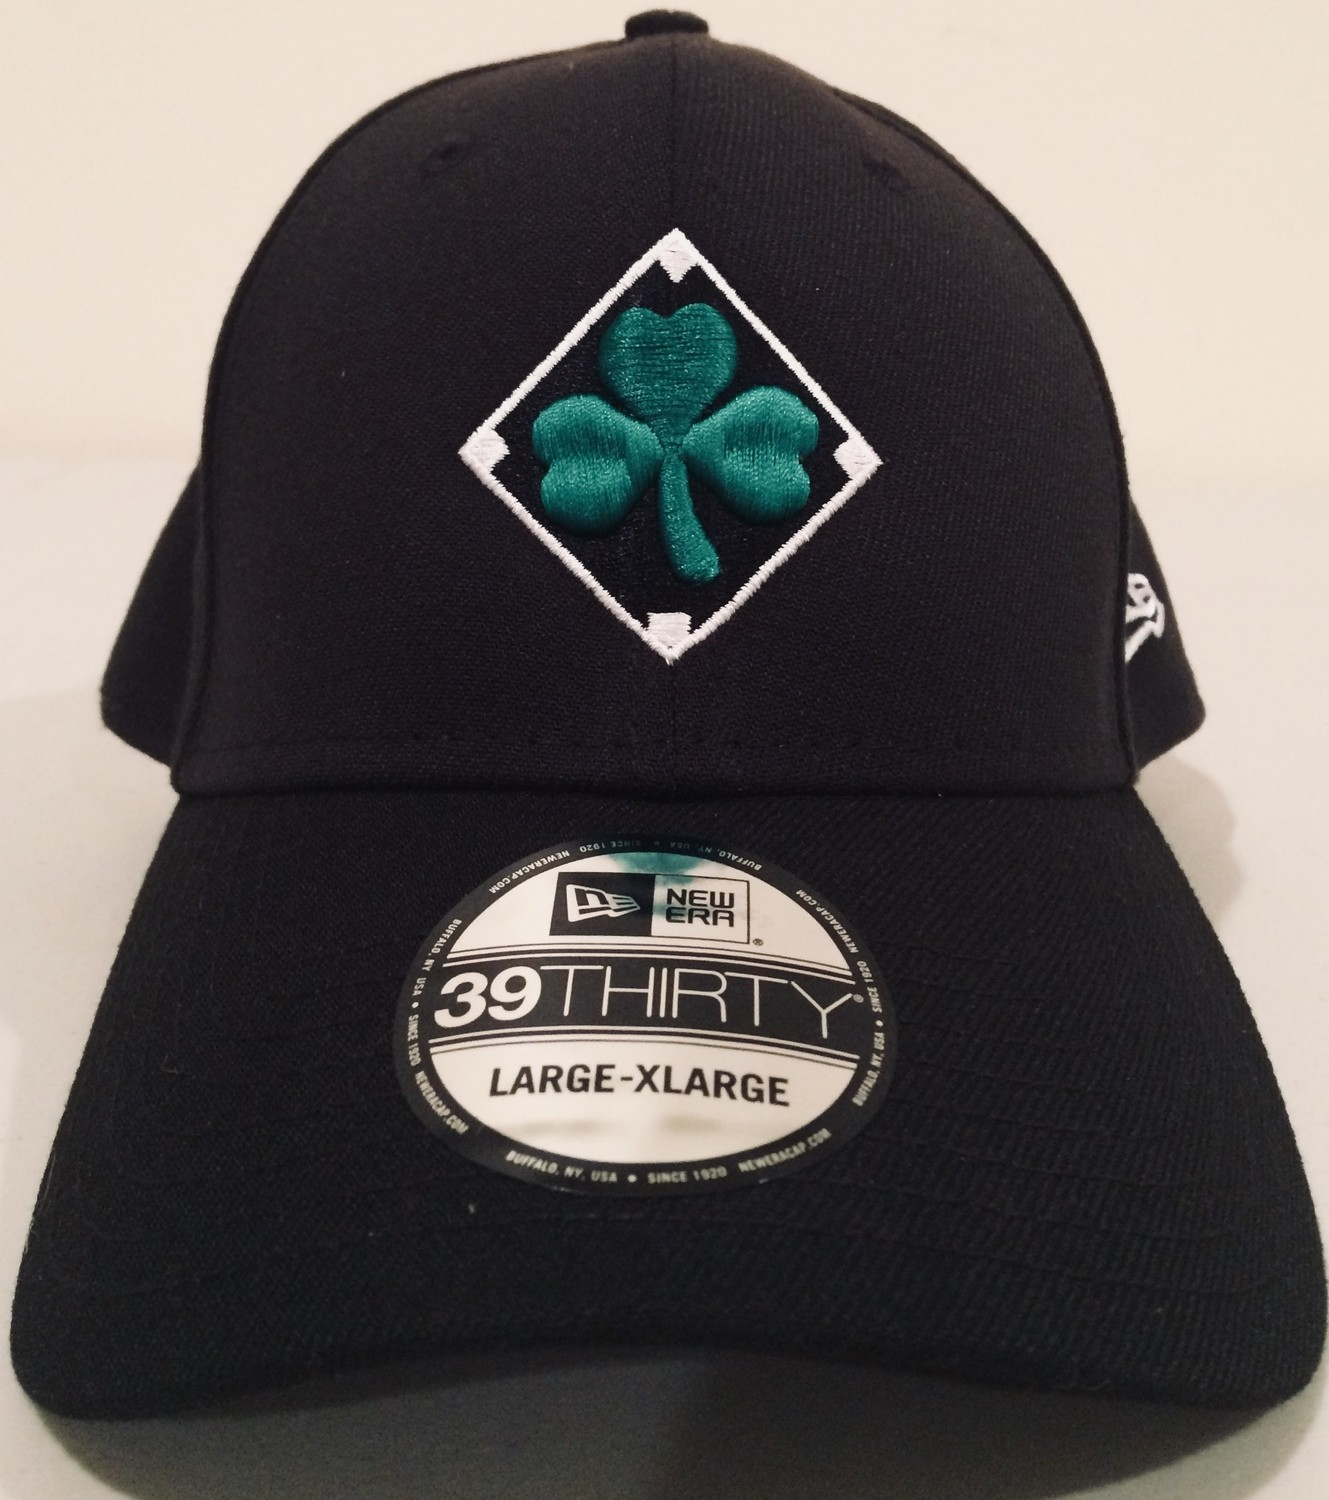 Shamrock Diamond Flexfit Cap with Irish Flag by New Era